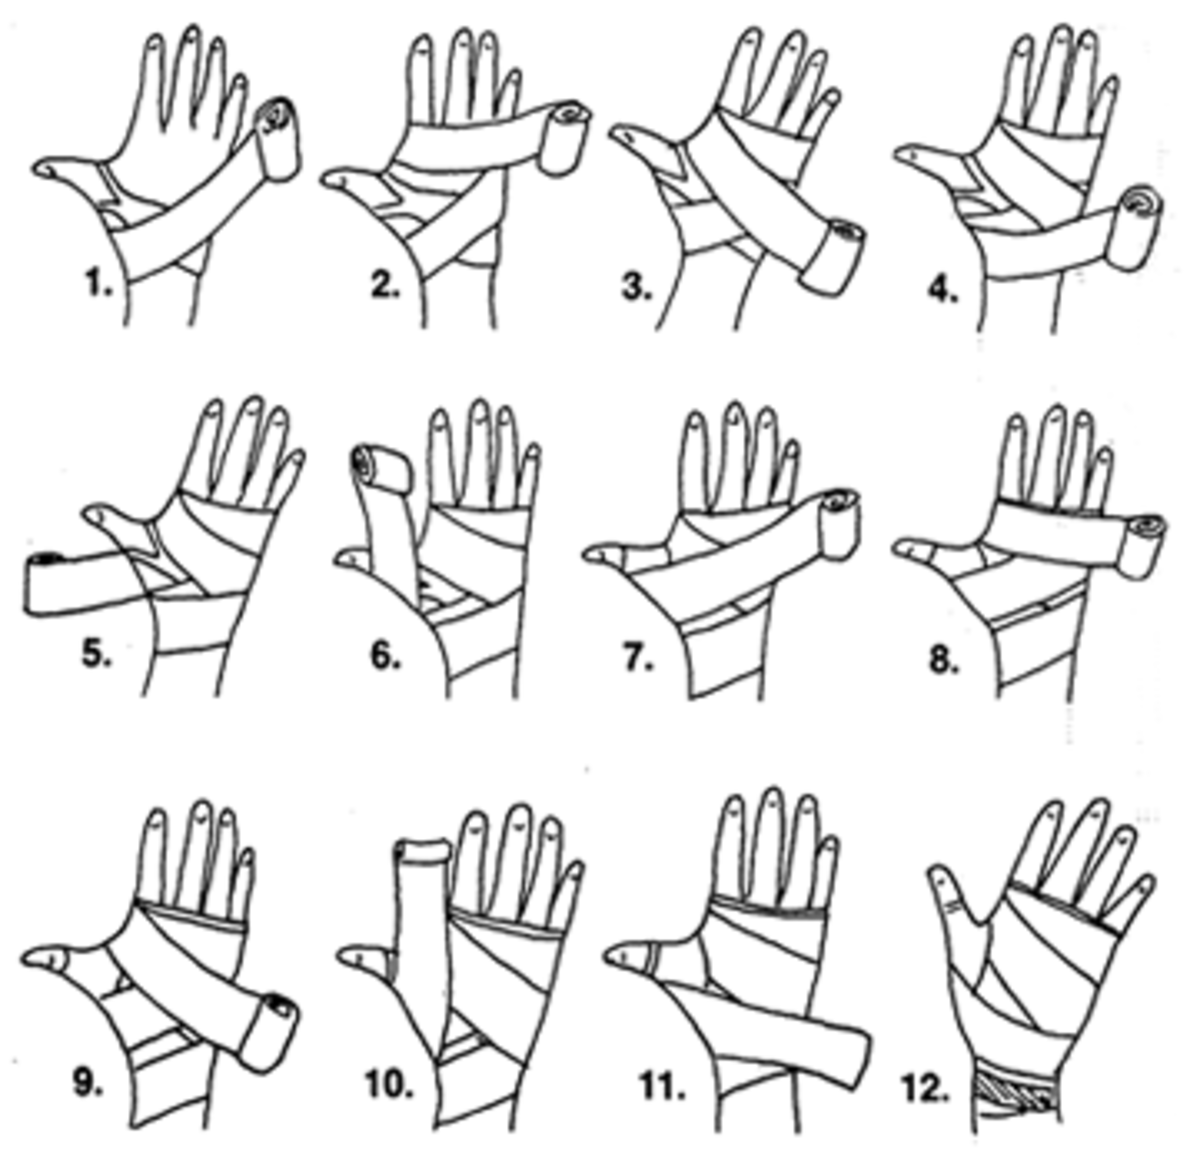 How to wrap up your hands. You should wrap your hands before using boxing gloves, both to protect your hands and to keep your gloves from getting stinky